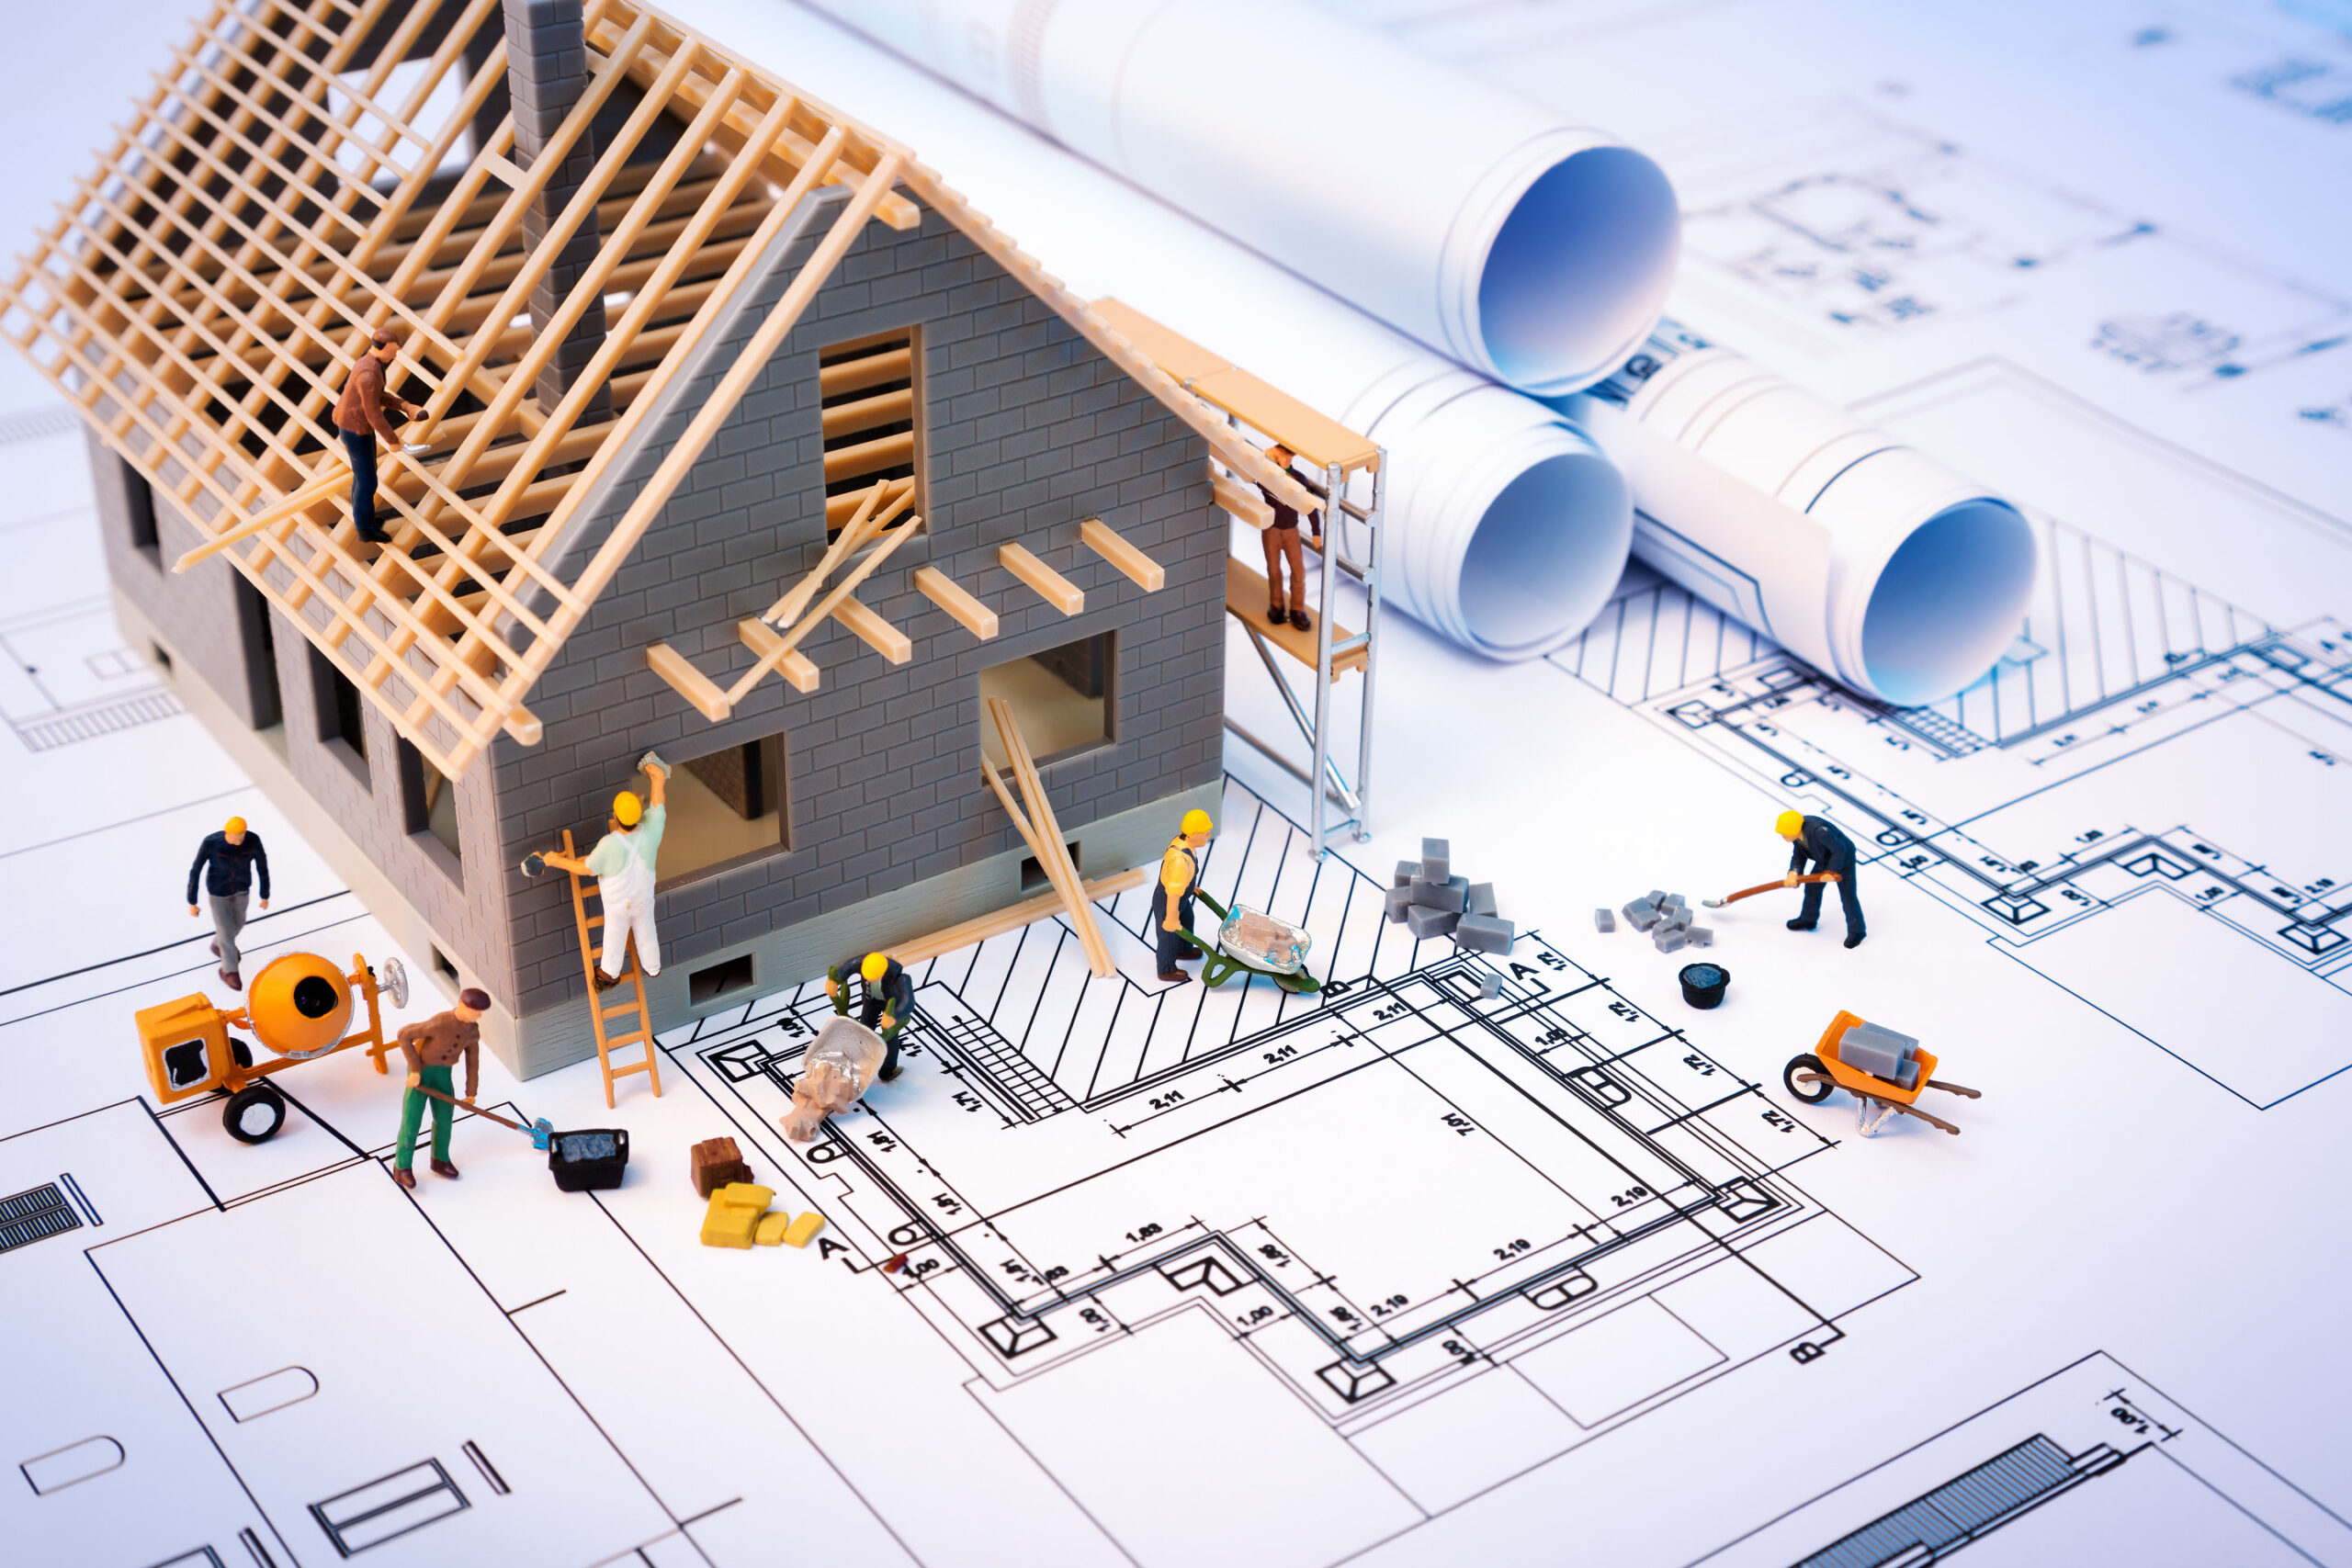 Multitrade construction business in the United Kingdom